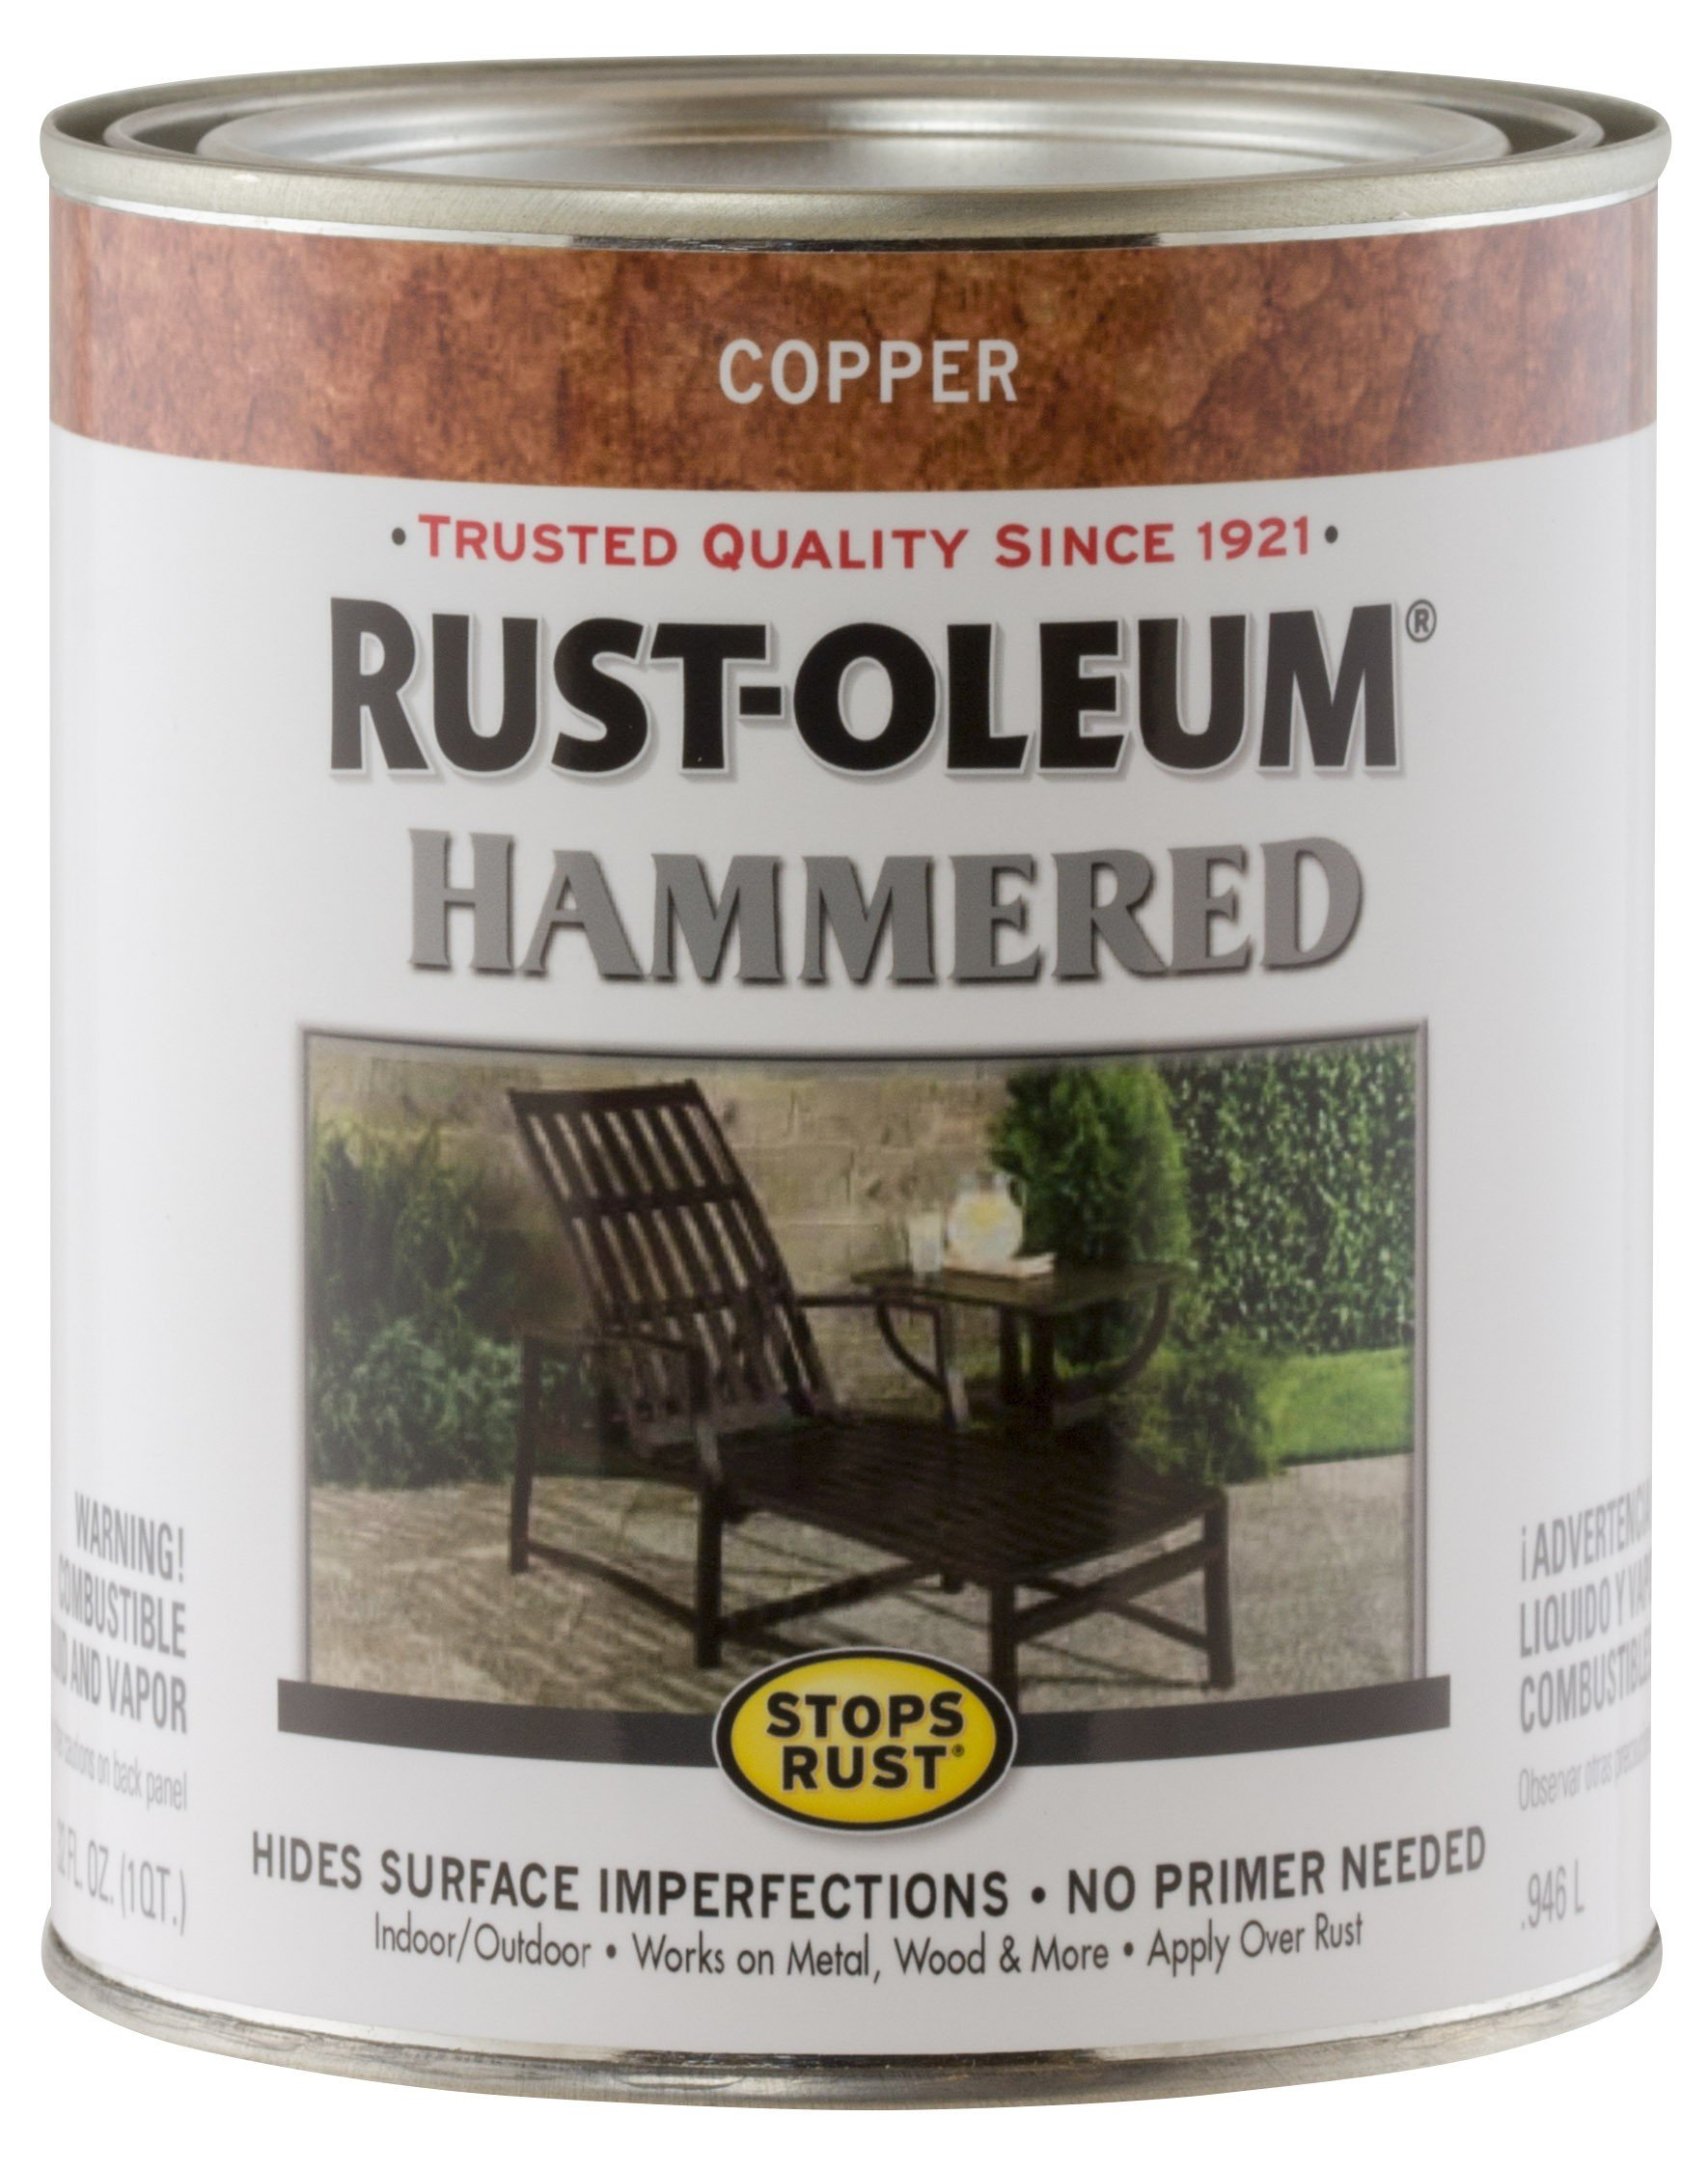 Paint for metal for outdoor works - reliable protection against corrosion for many years